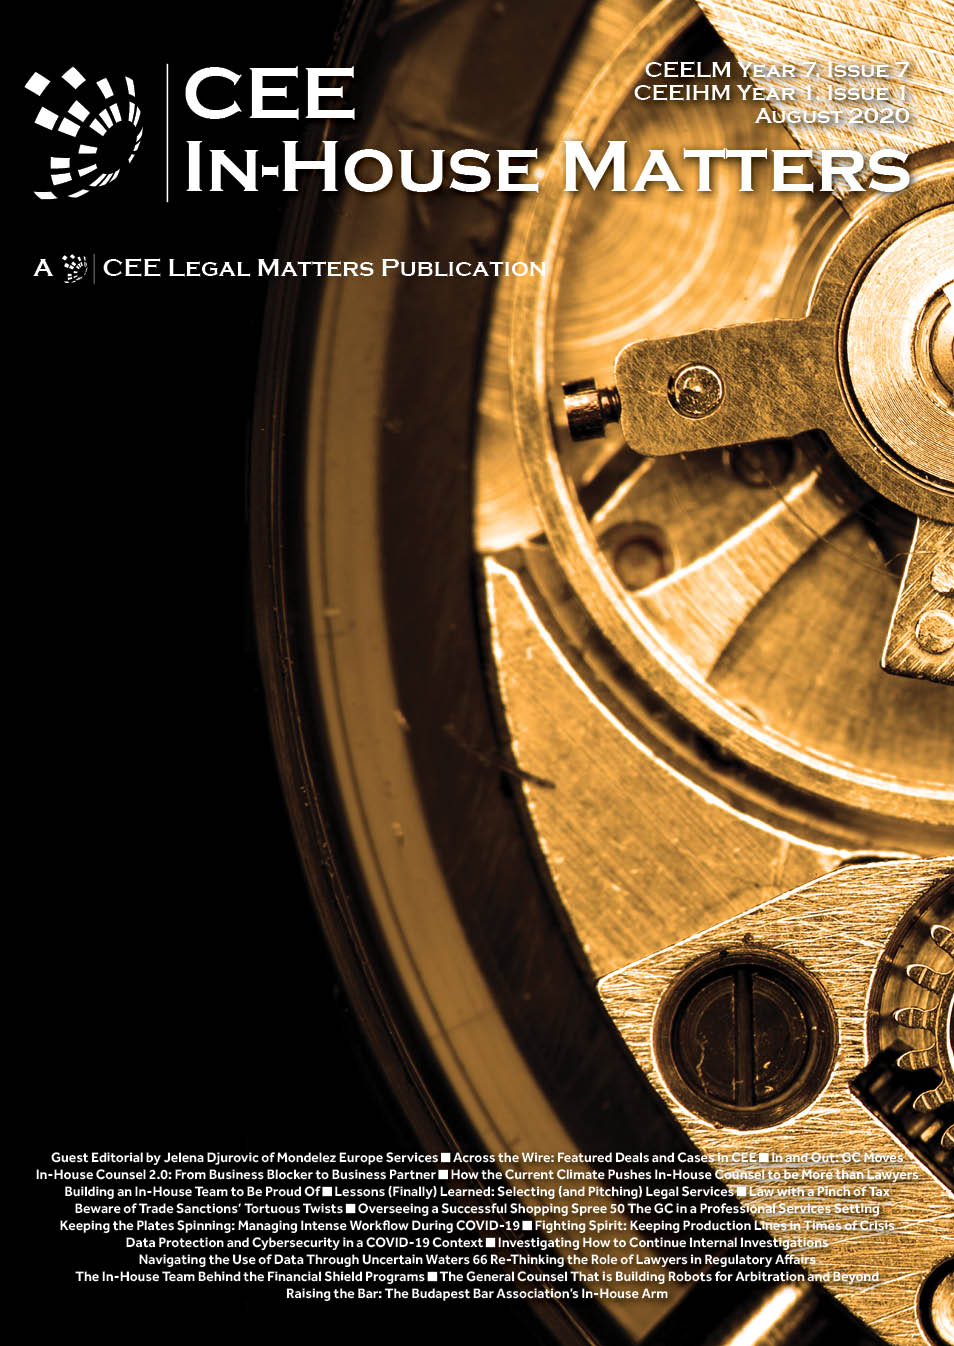 CEE Legal Matters: Issue 7.7 (CEEIHM 1.1.)